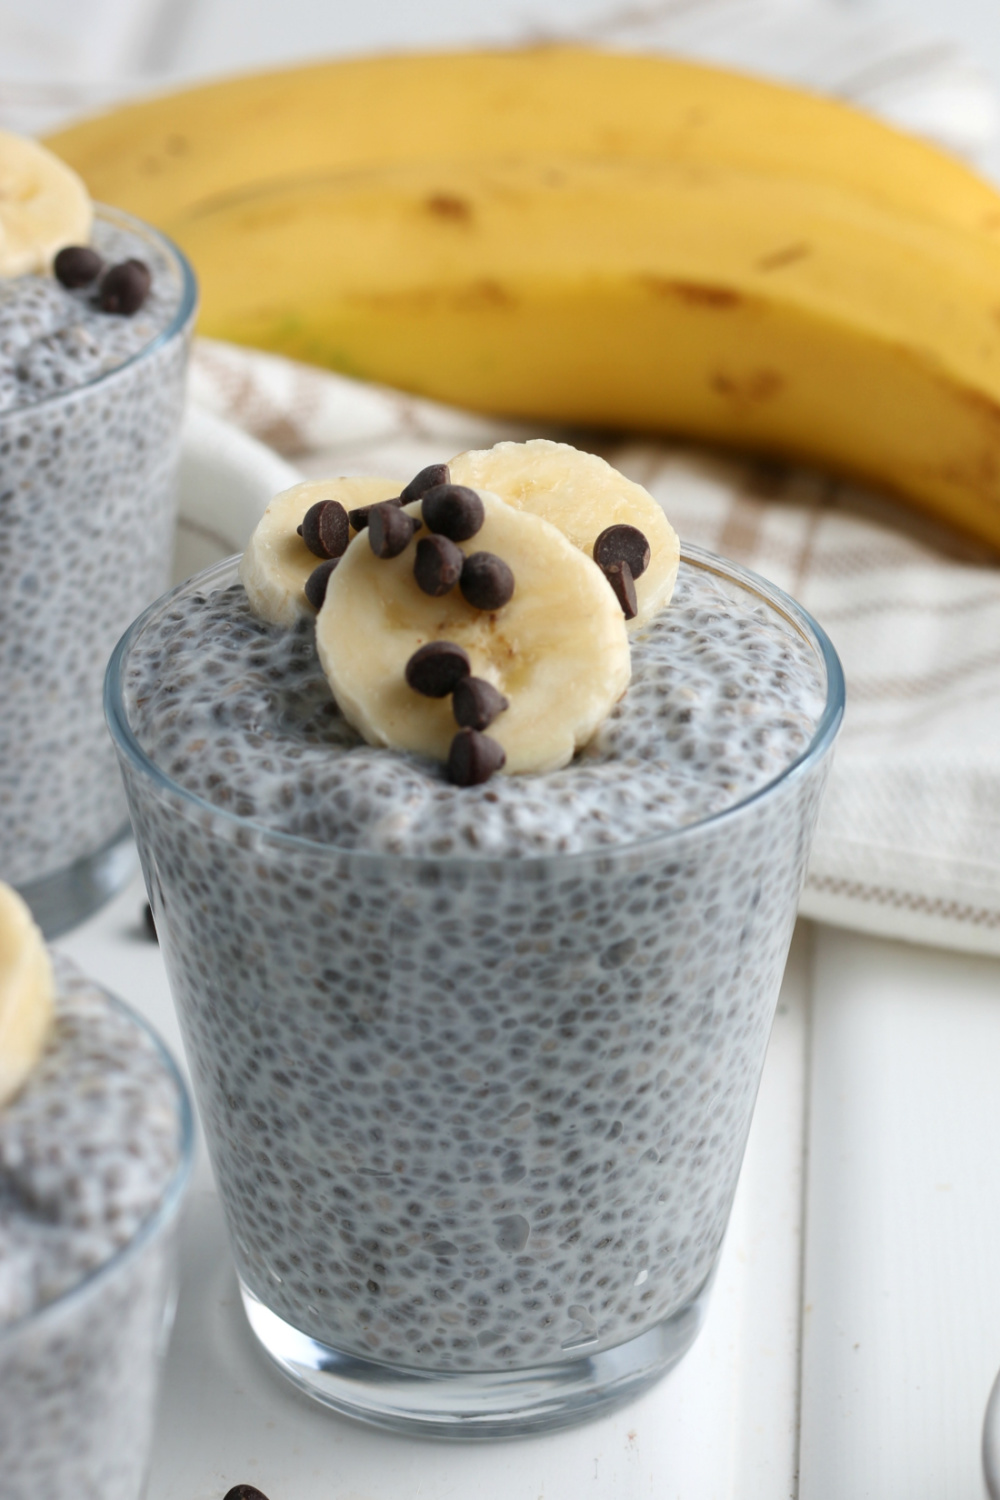 A cup of chia pudding, topped with sliced bananas and chocolate chip